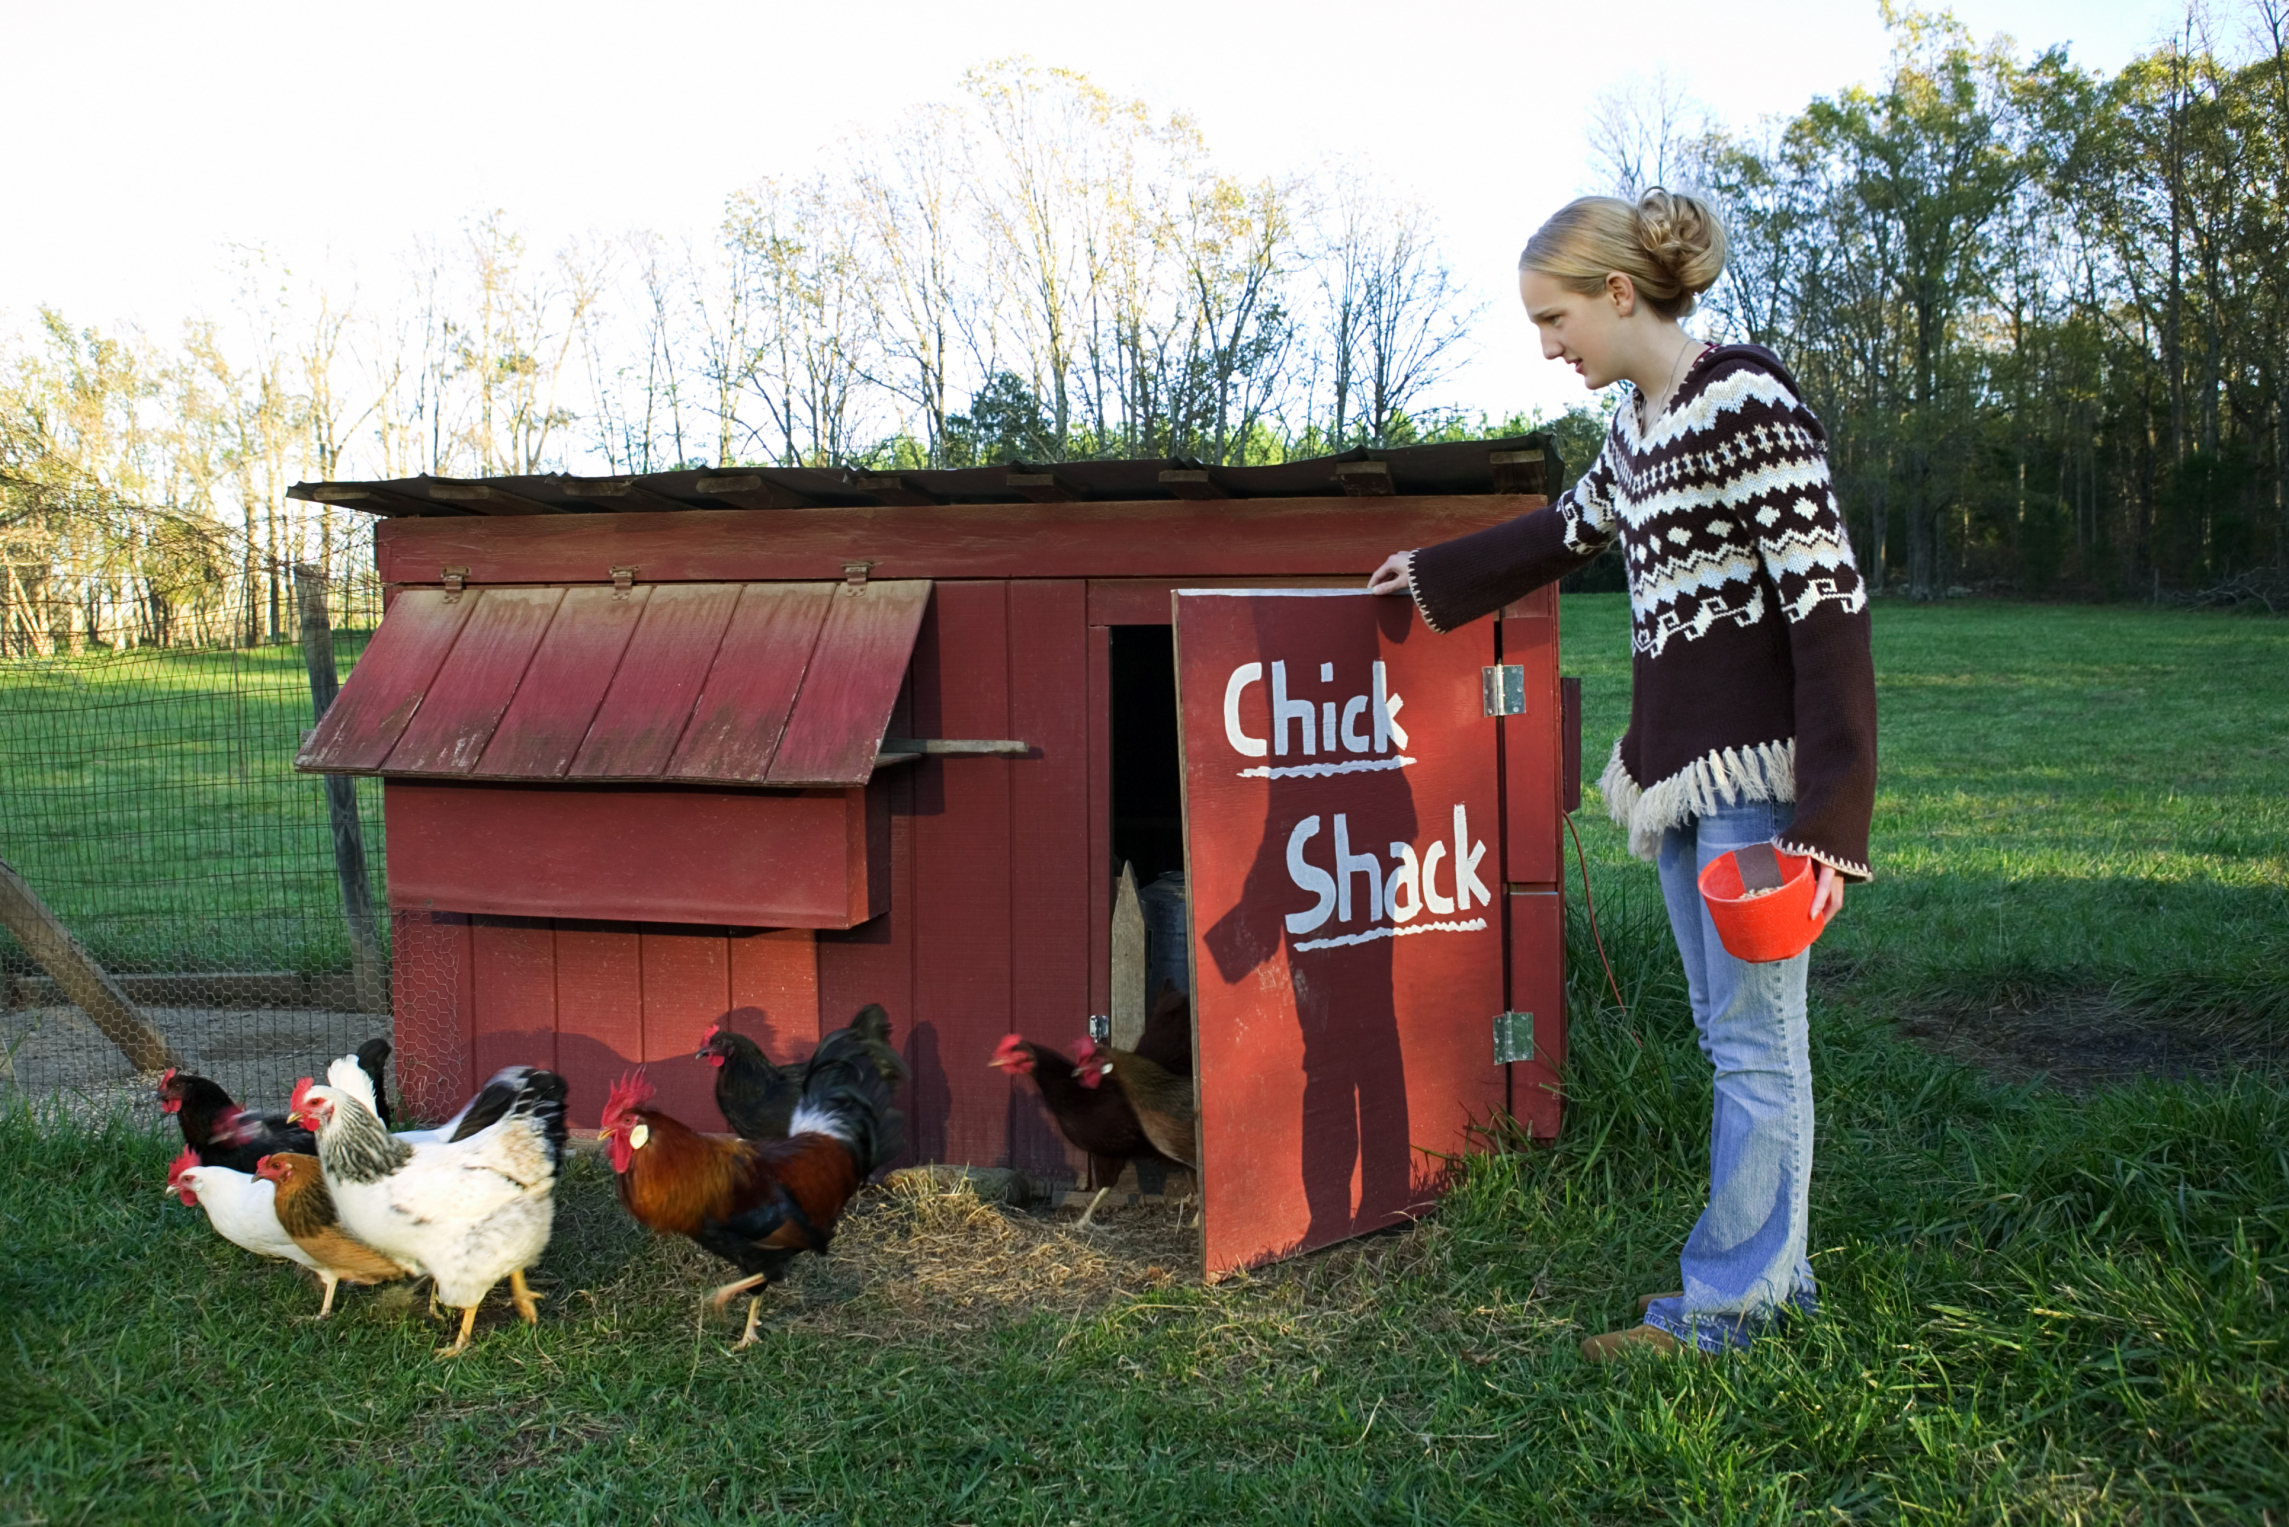 How to Cover Up a Chicken Coop Smell | Home Guides | SF Gate